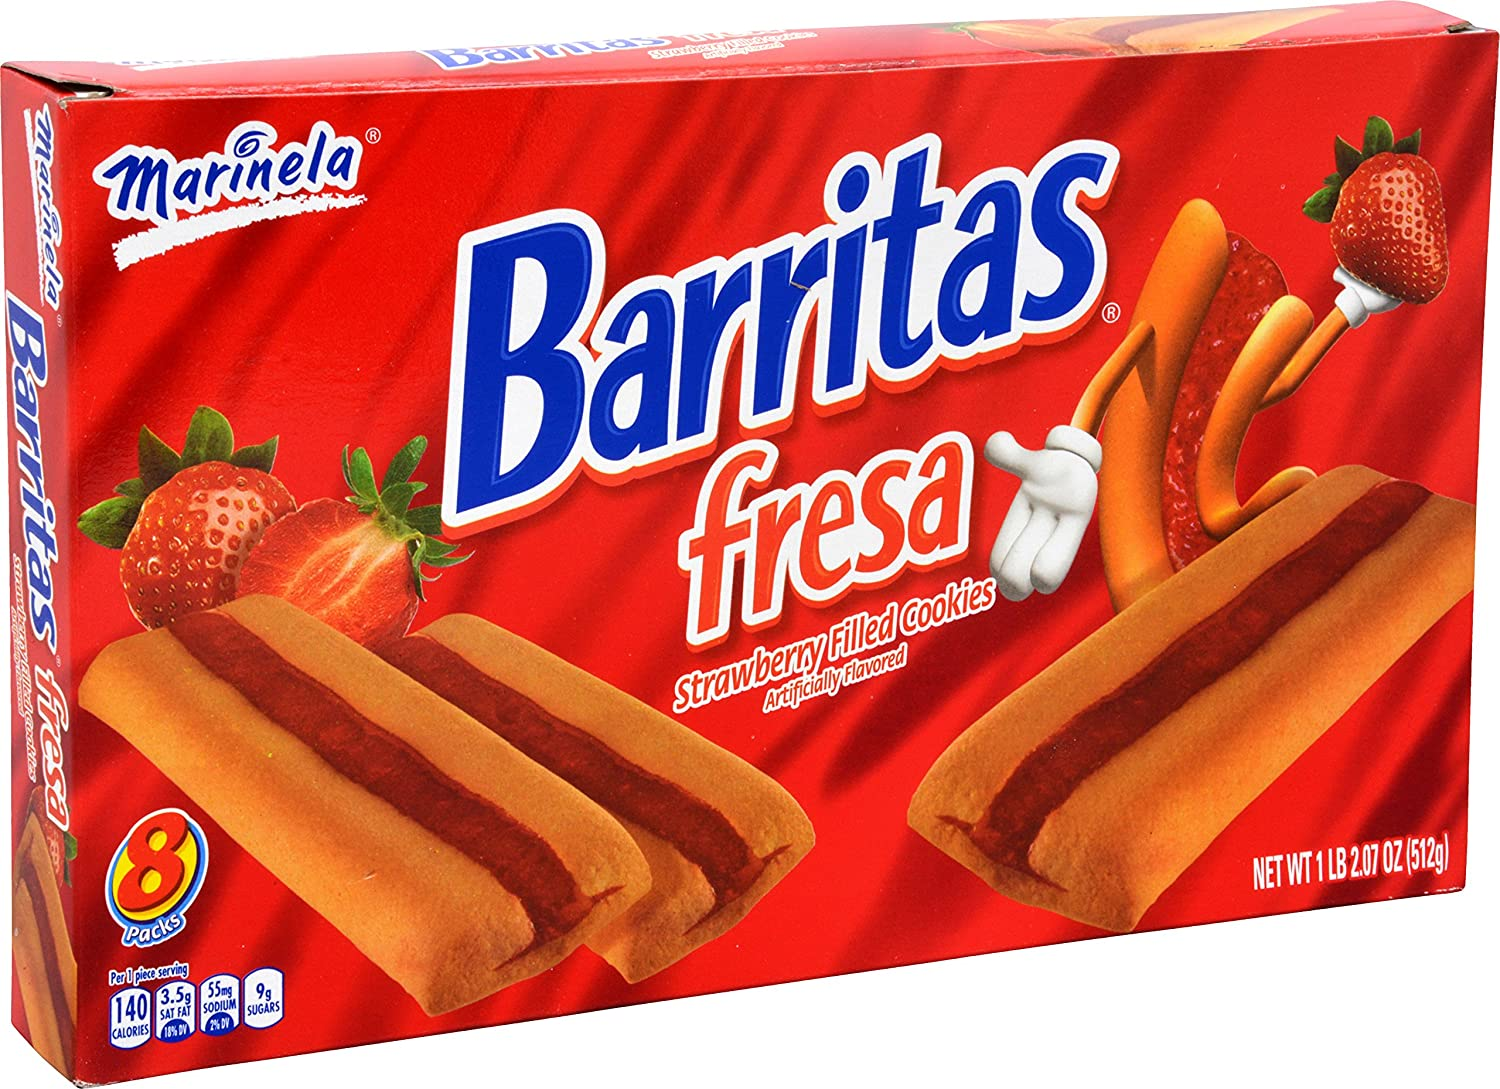 Amazon.com: Marinela Barritas De Fresa En Caja Strawberry Bars Box, 18.06 oz